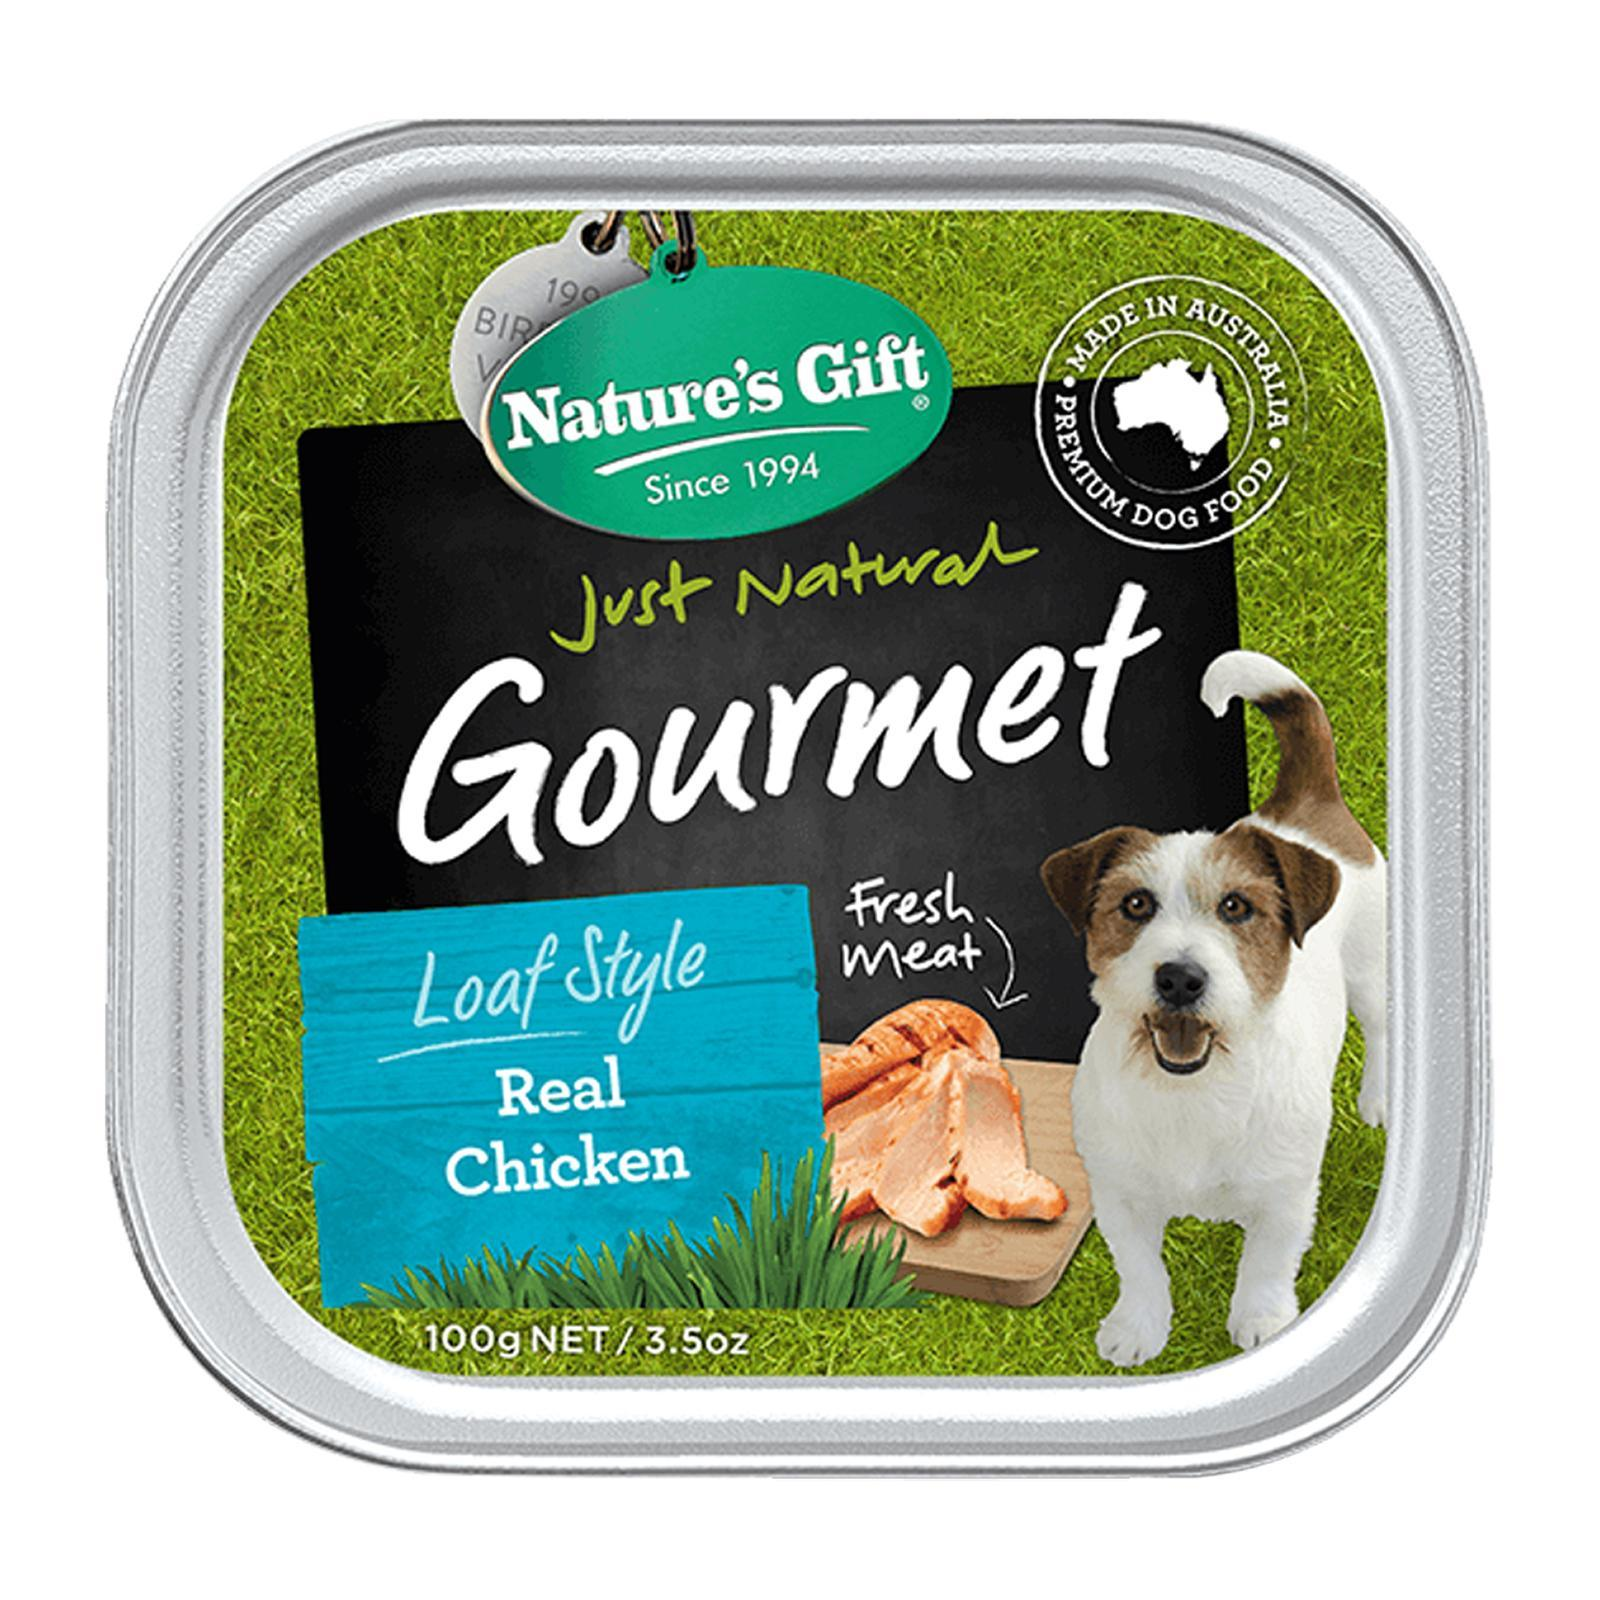 Nature's Gift Gourmet Real Chicken Wet Dog Food (9 Trays)